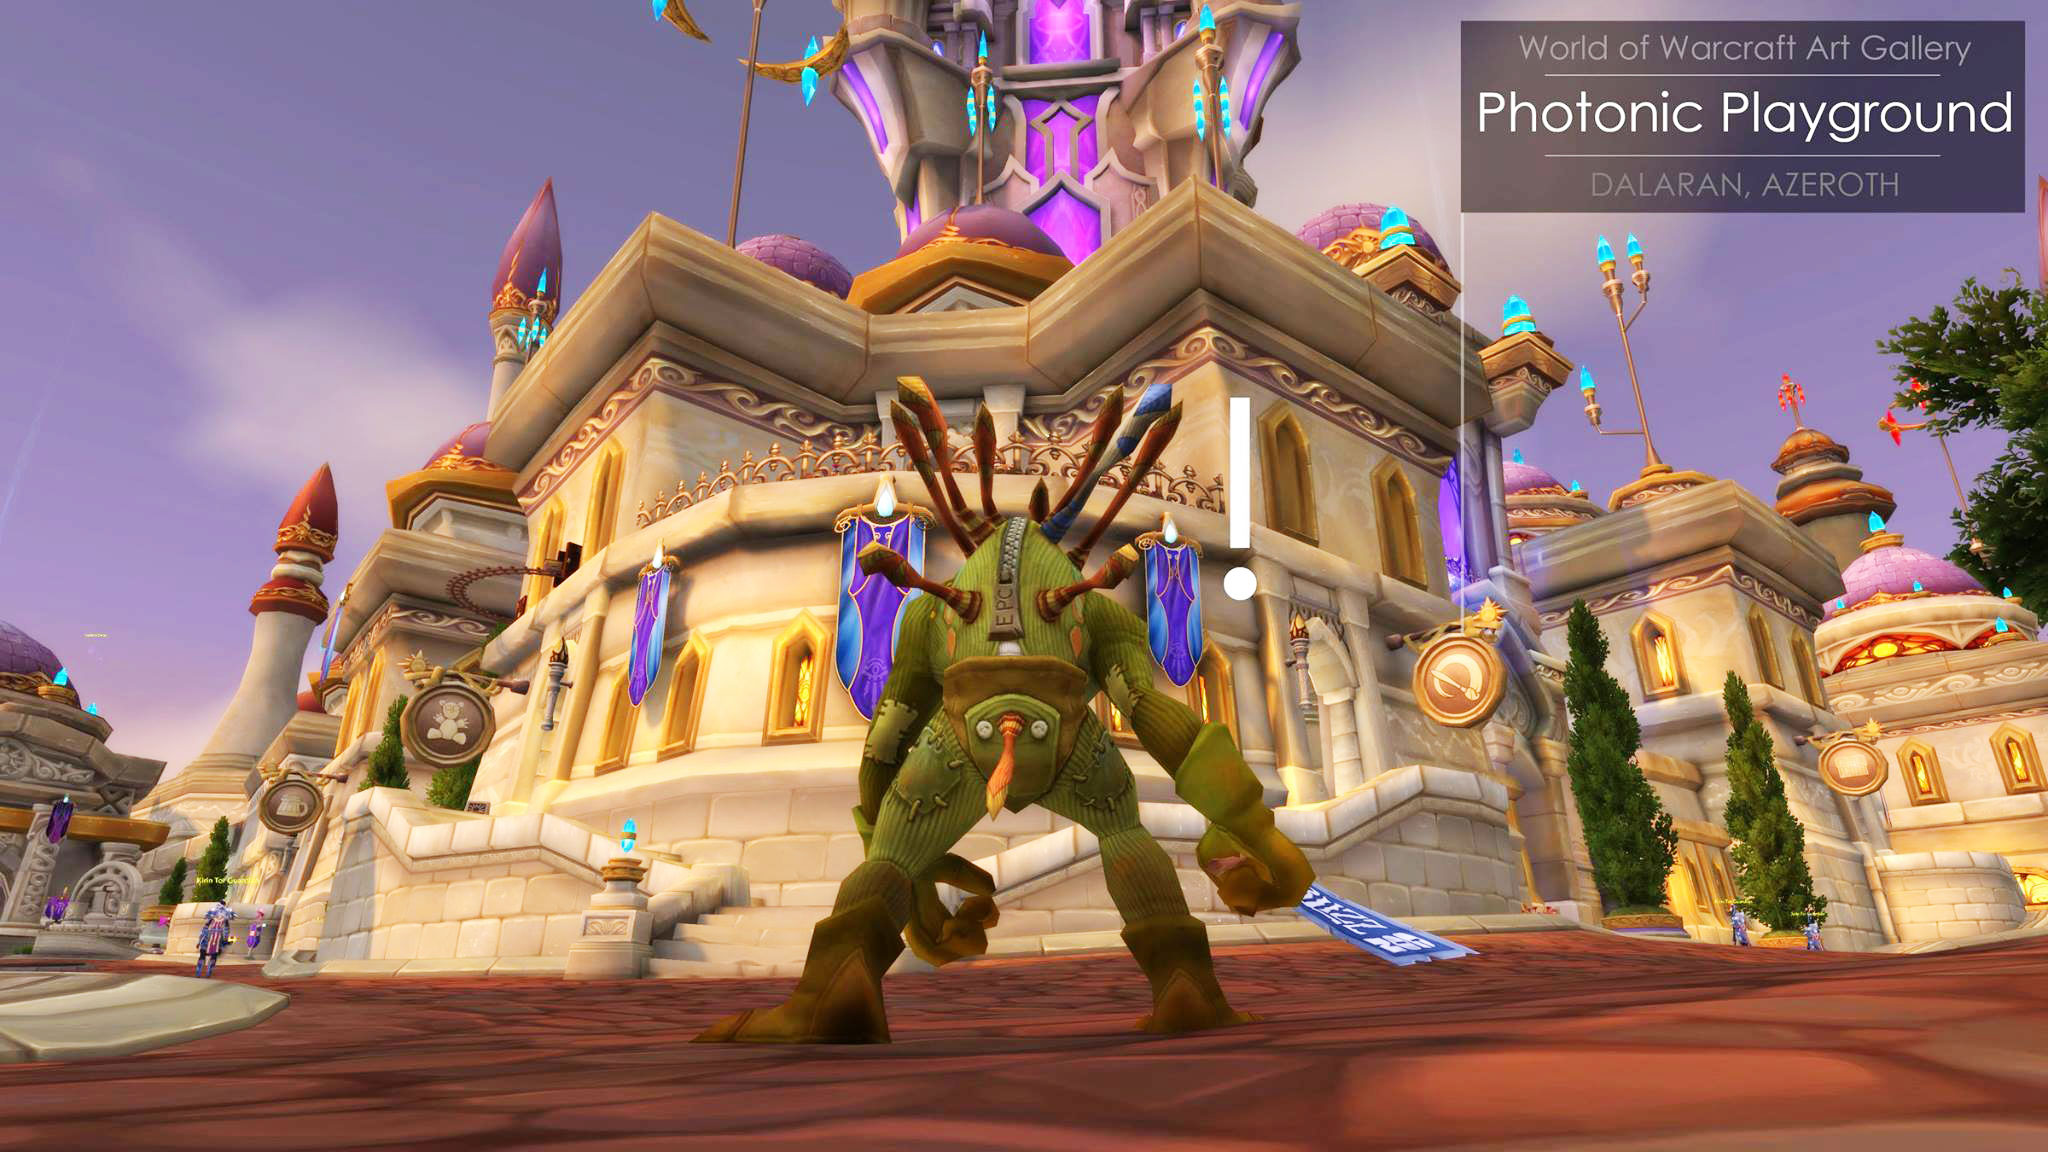 In WoW?! - Our gallery, Photonic Playground, is now in World of Warcraft in the new Dalaran as of the Legion expansion! Thank you to the WoW design team for adding us digitally to the world's biggest MMORPG game. More about the game: http://worldofwarcraft.com